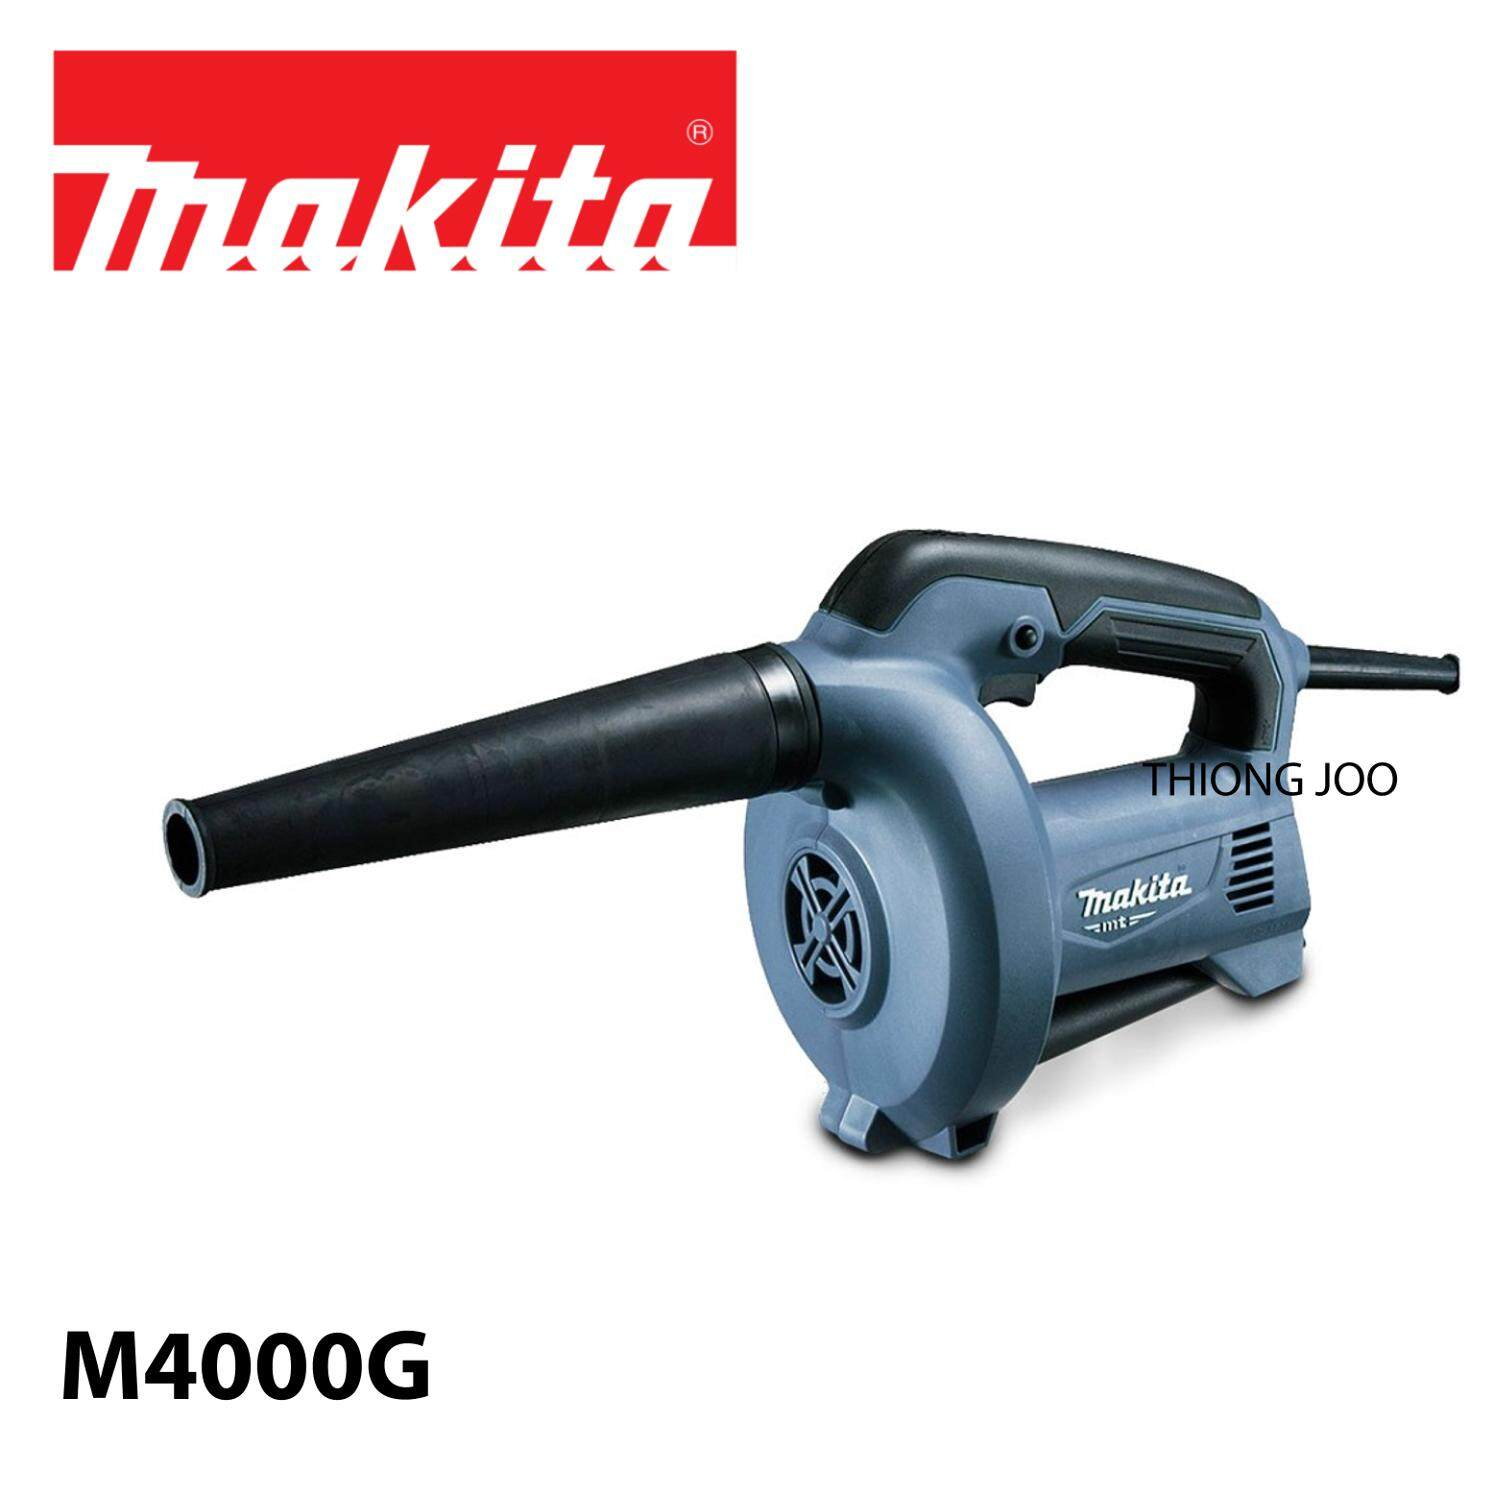 Makita Power Tools For The Best Prices In Malaysia Blower Wiring Diagram